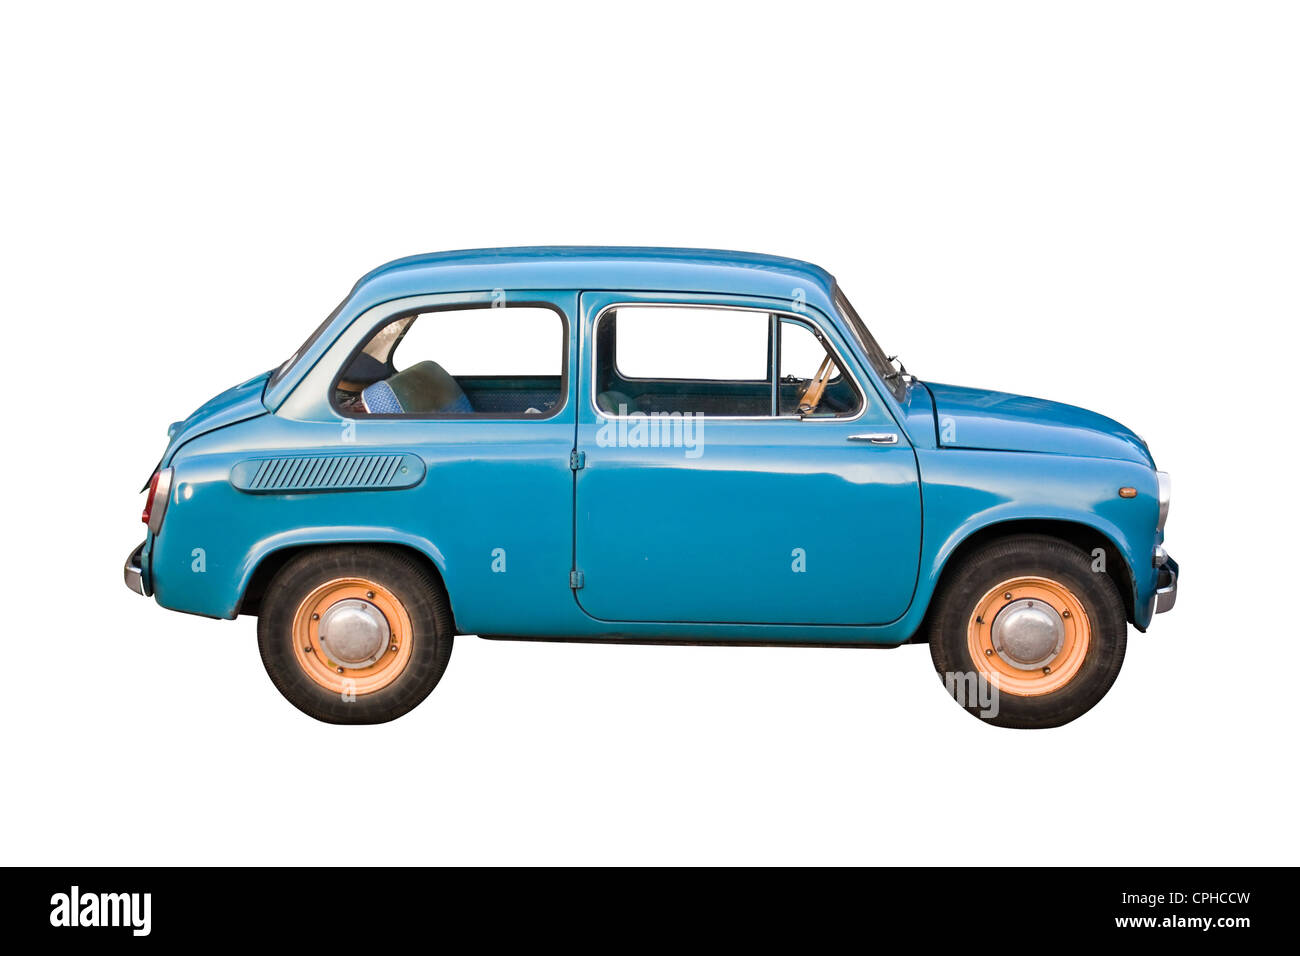 Blue subcompact Soviet old-timer car isolated on white background - Stock Image